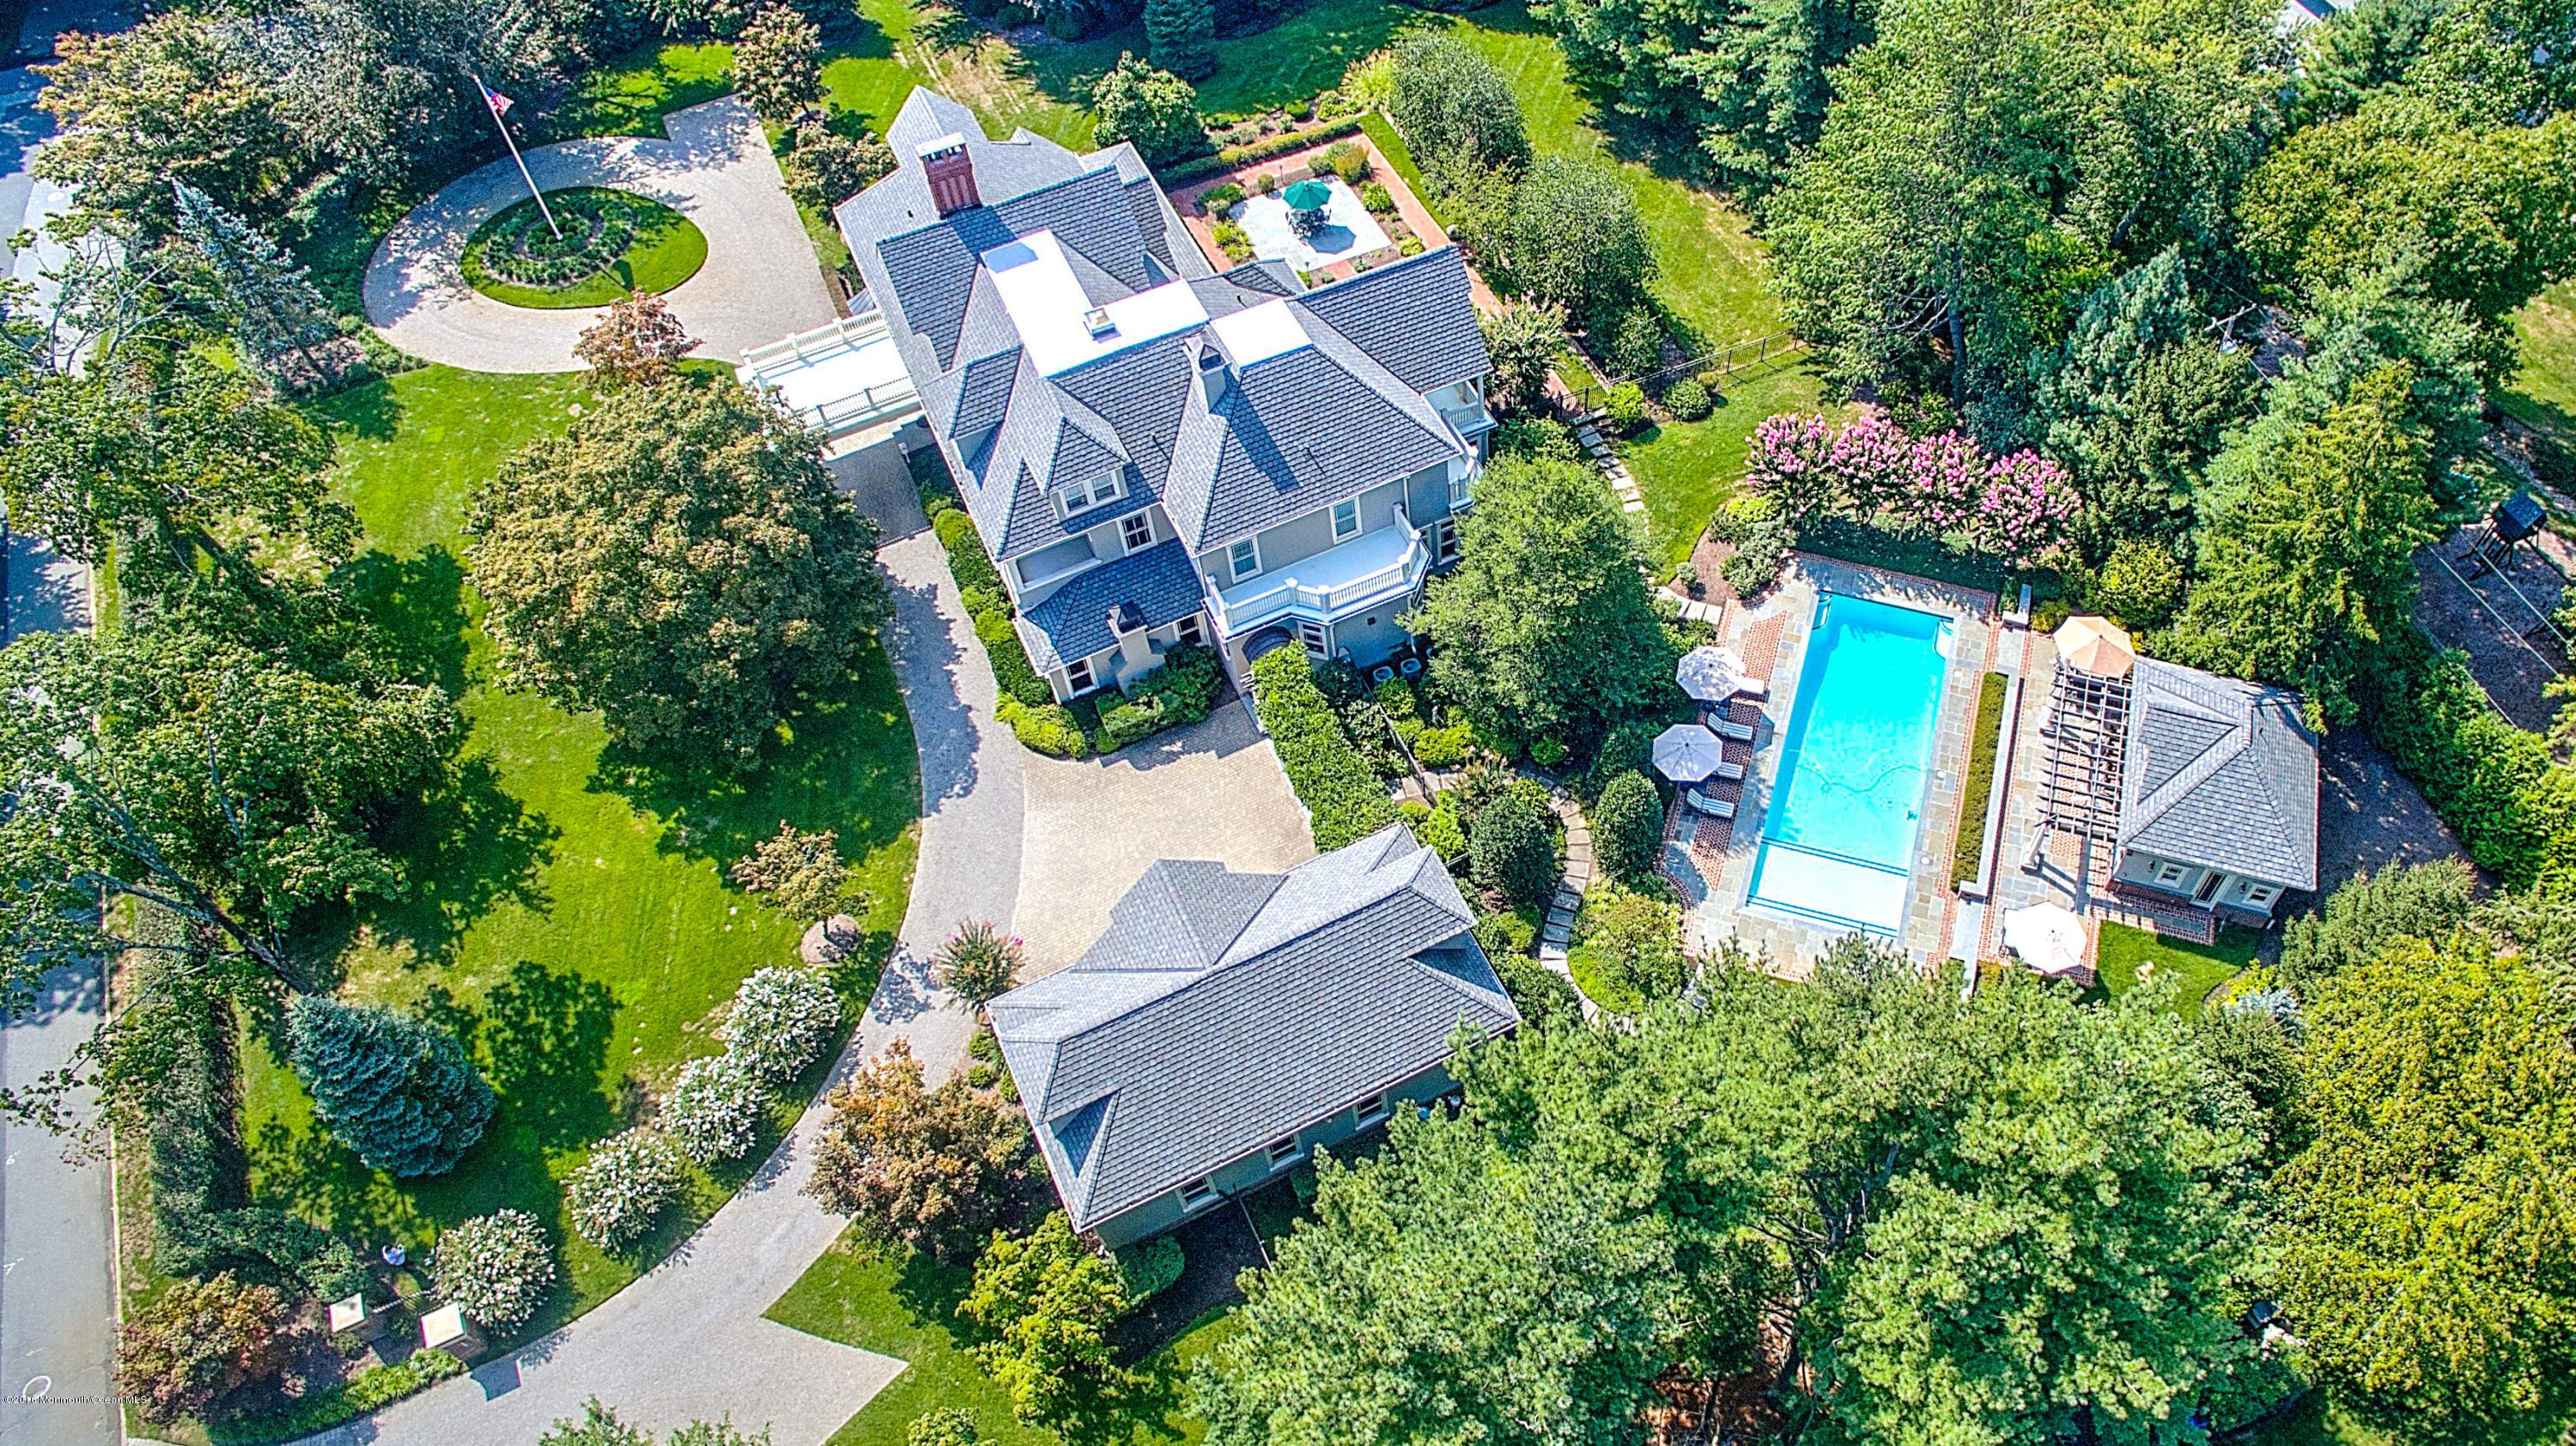 5 A BUTTONWOOD LANE, RUMSON, NJ 07760